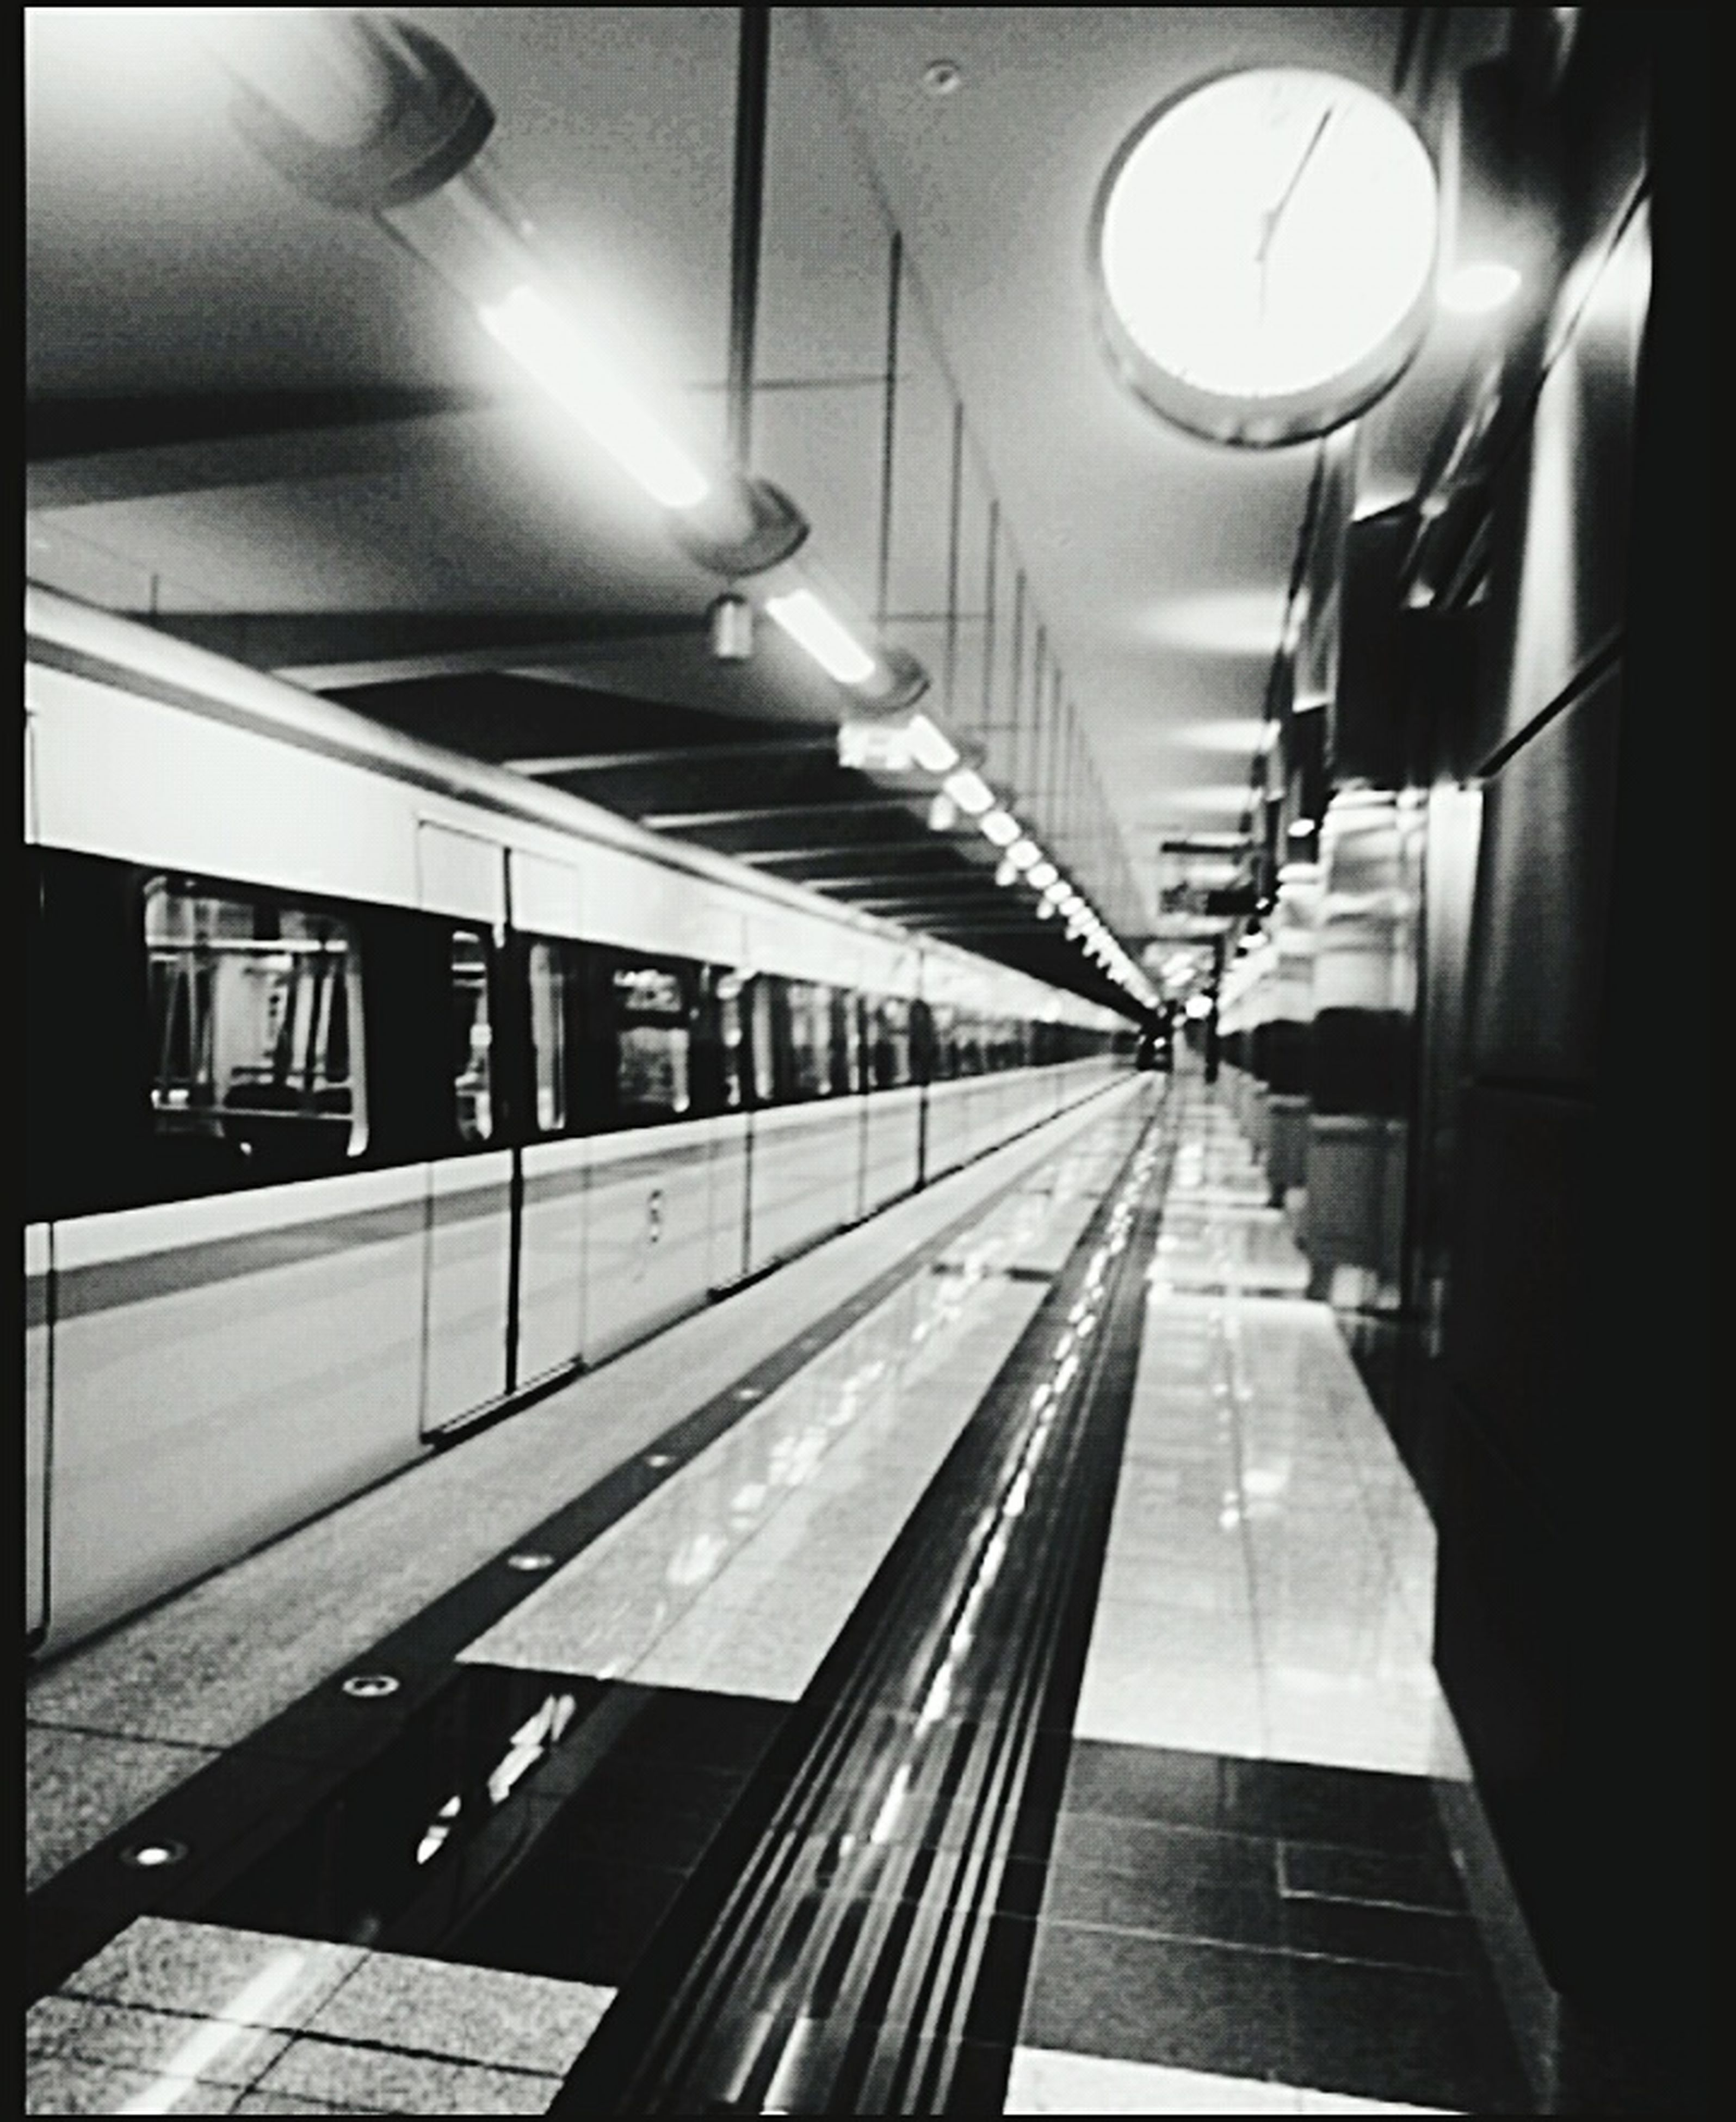 indoors, travel, illuminated, ceiling, transportation, subway station, public transportation, subway train, no people, day